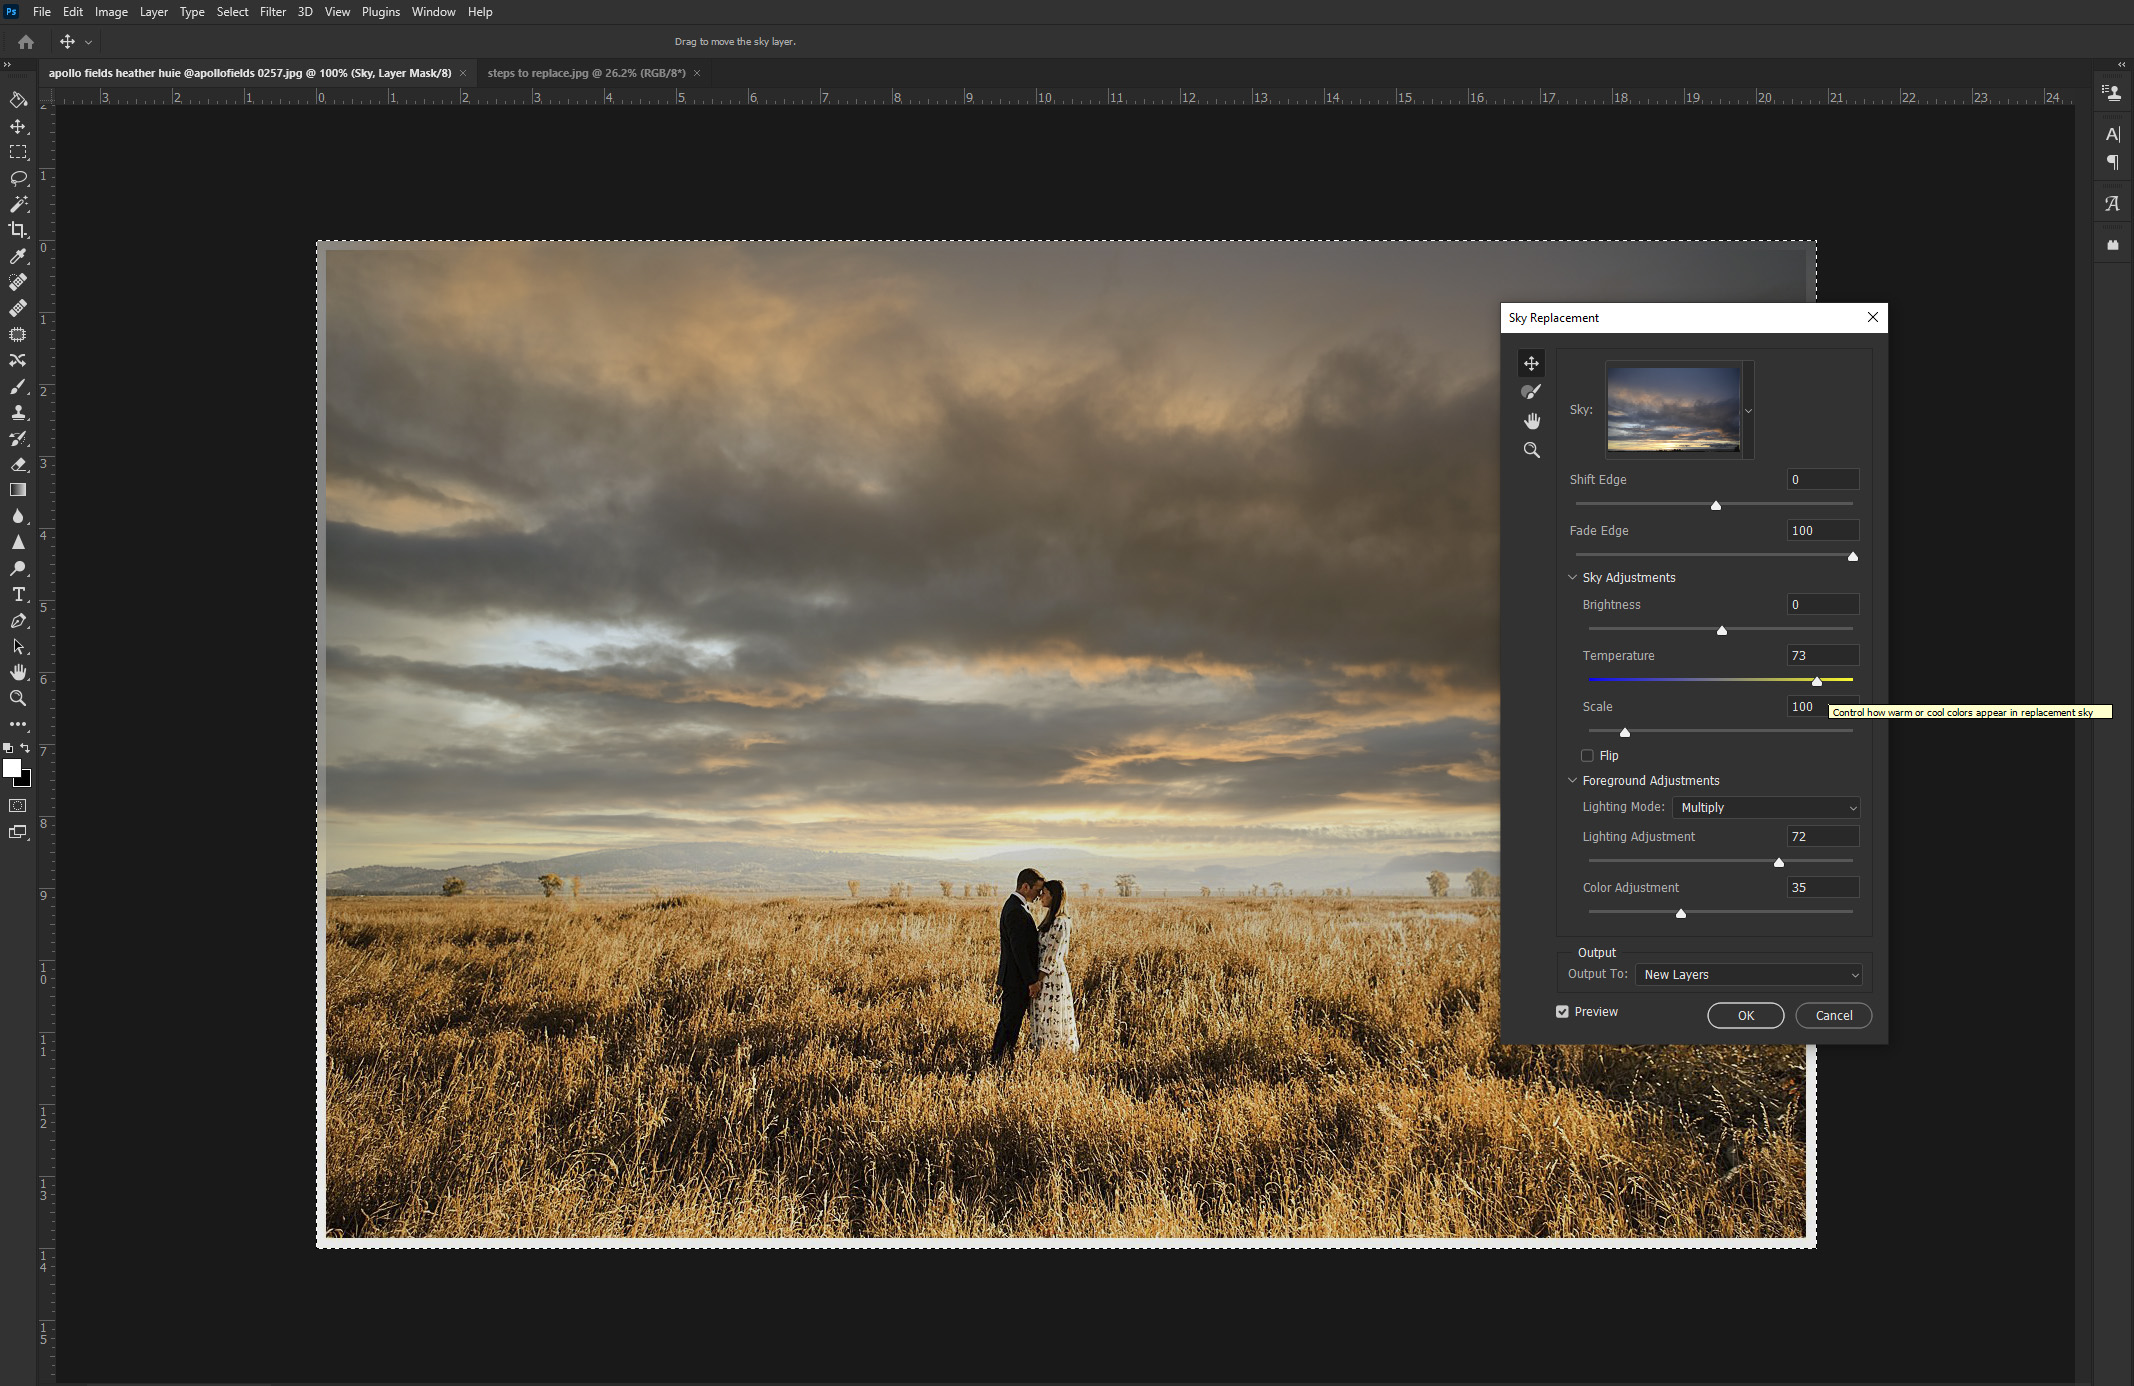 Adjusting temperature on sunset sky of an image in Photoshop